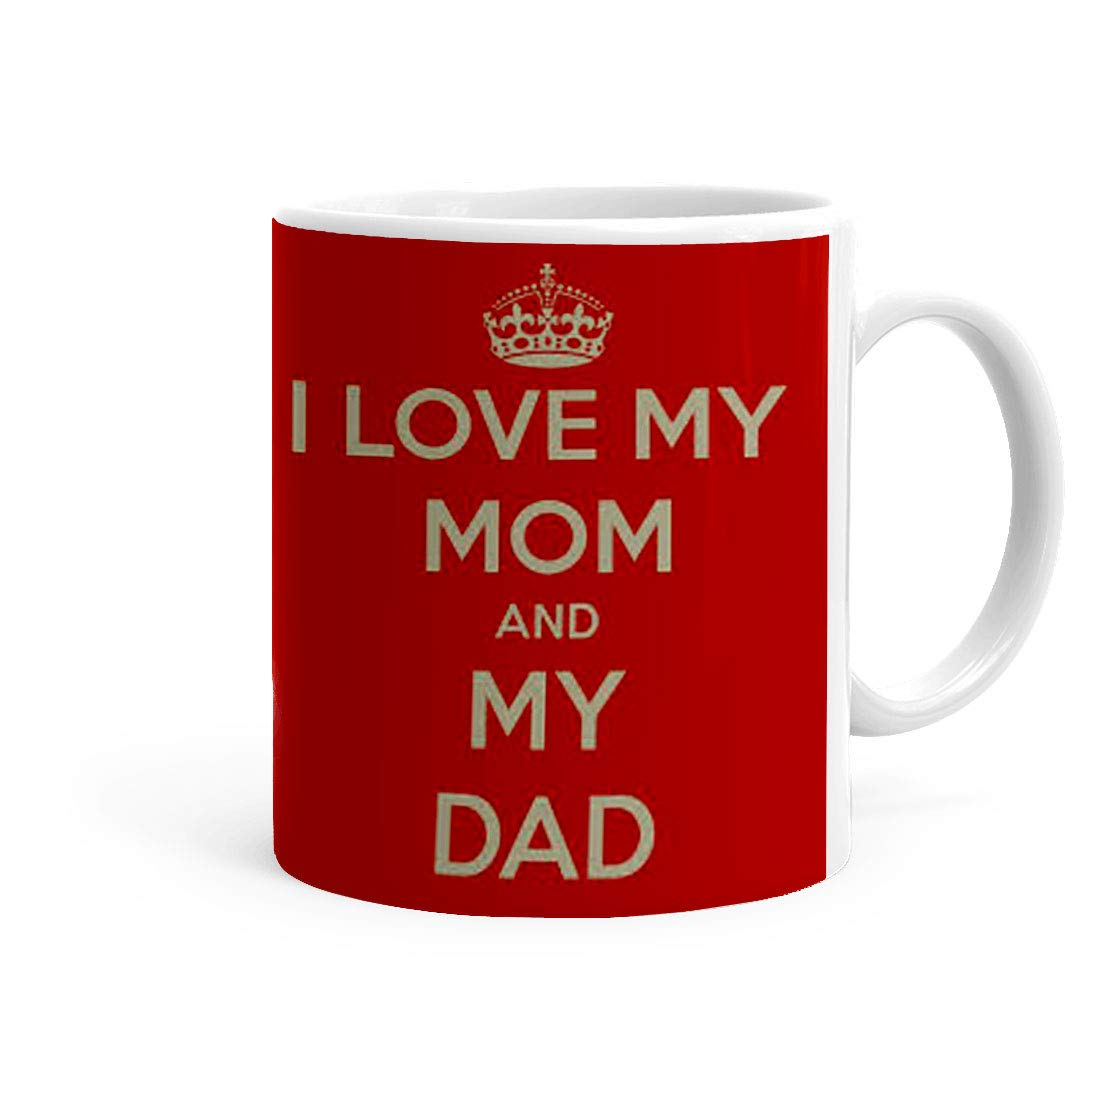 Buy Mojolo Love My Mom And Dad Theme Coffee Mug 325 Ml Gift For Mother Online At Low Prices In India Amazon In